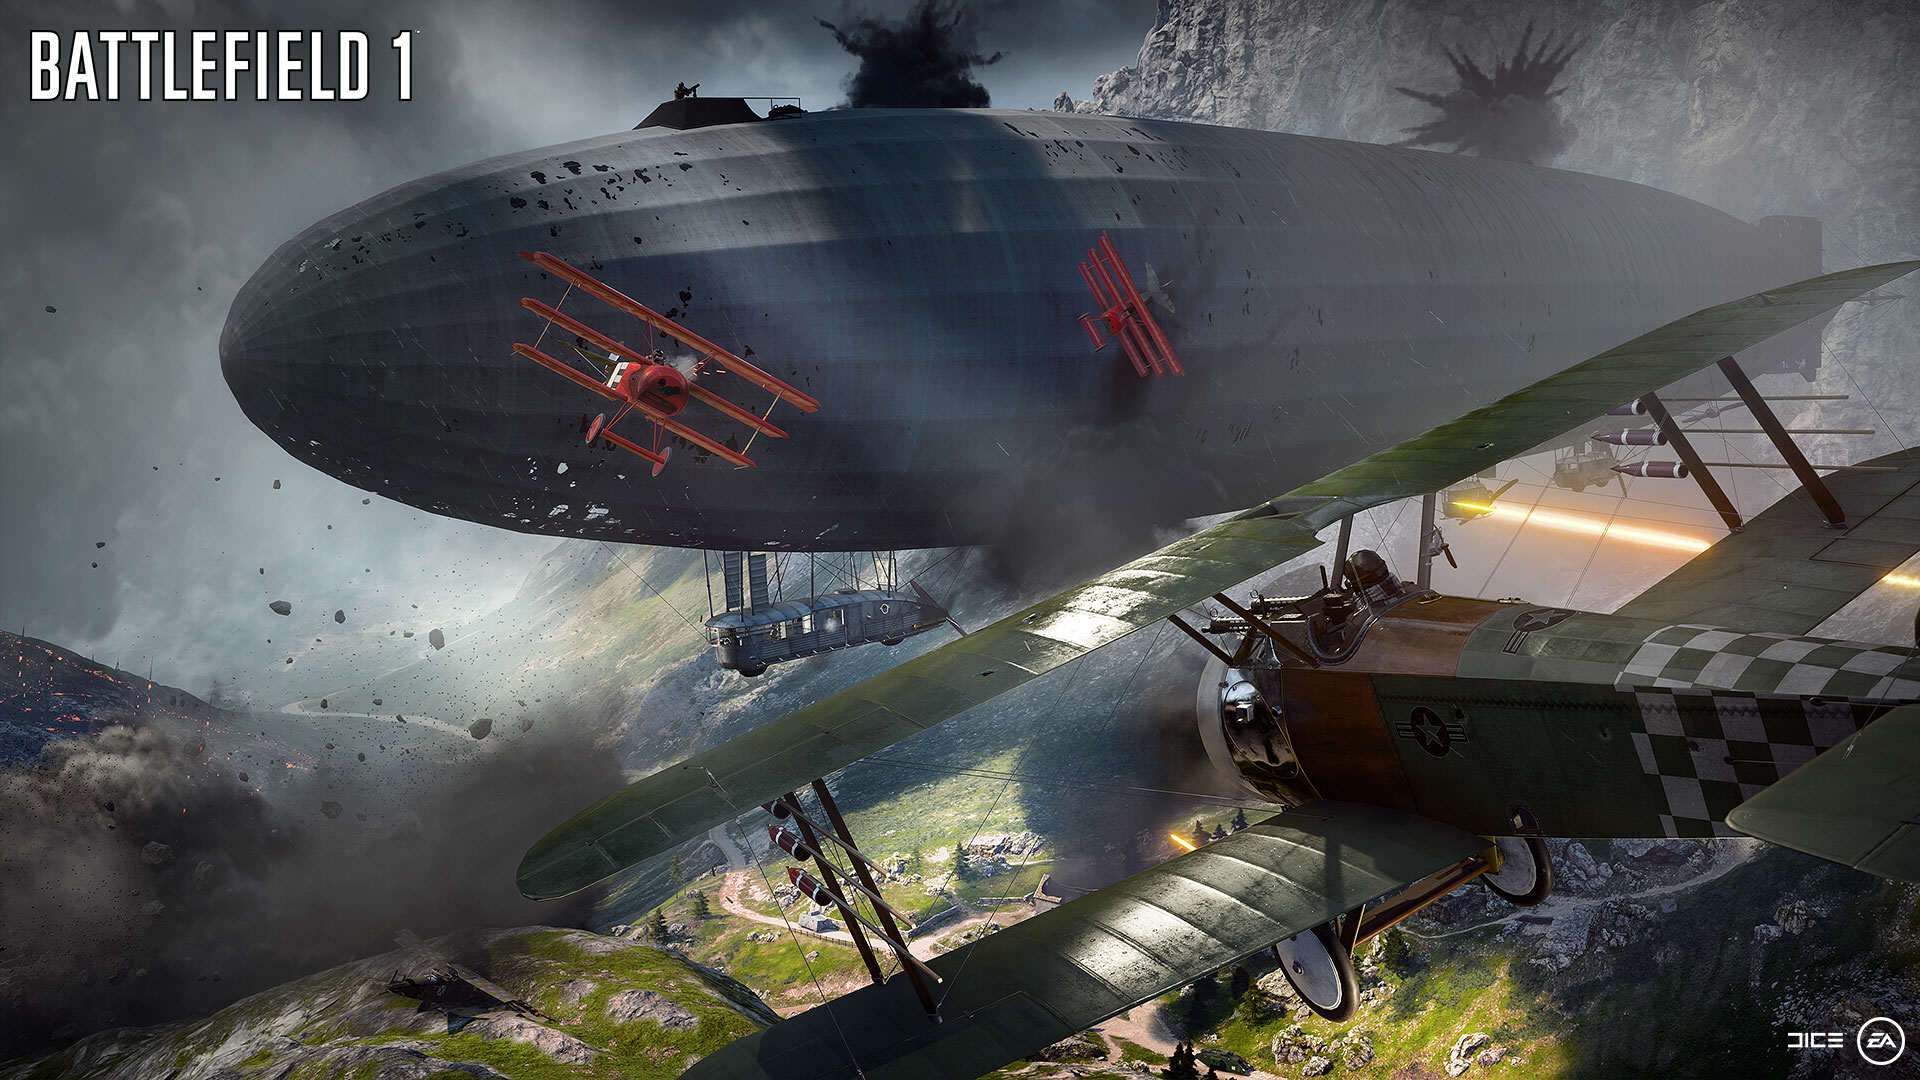 Battlefield 1 Gets Epic New Trailer And Gameplay Features BF1 EA PLAY 01 BEHEMOTH AIRSHIP WM